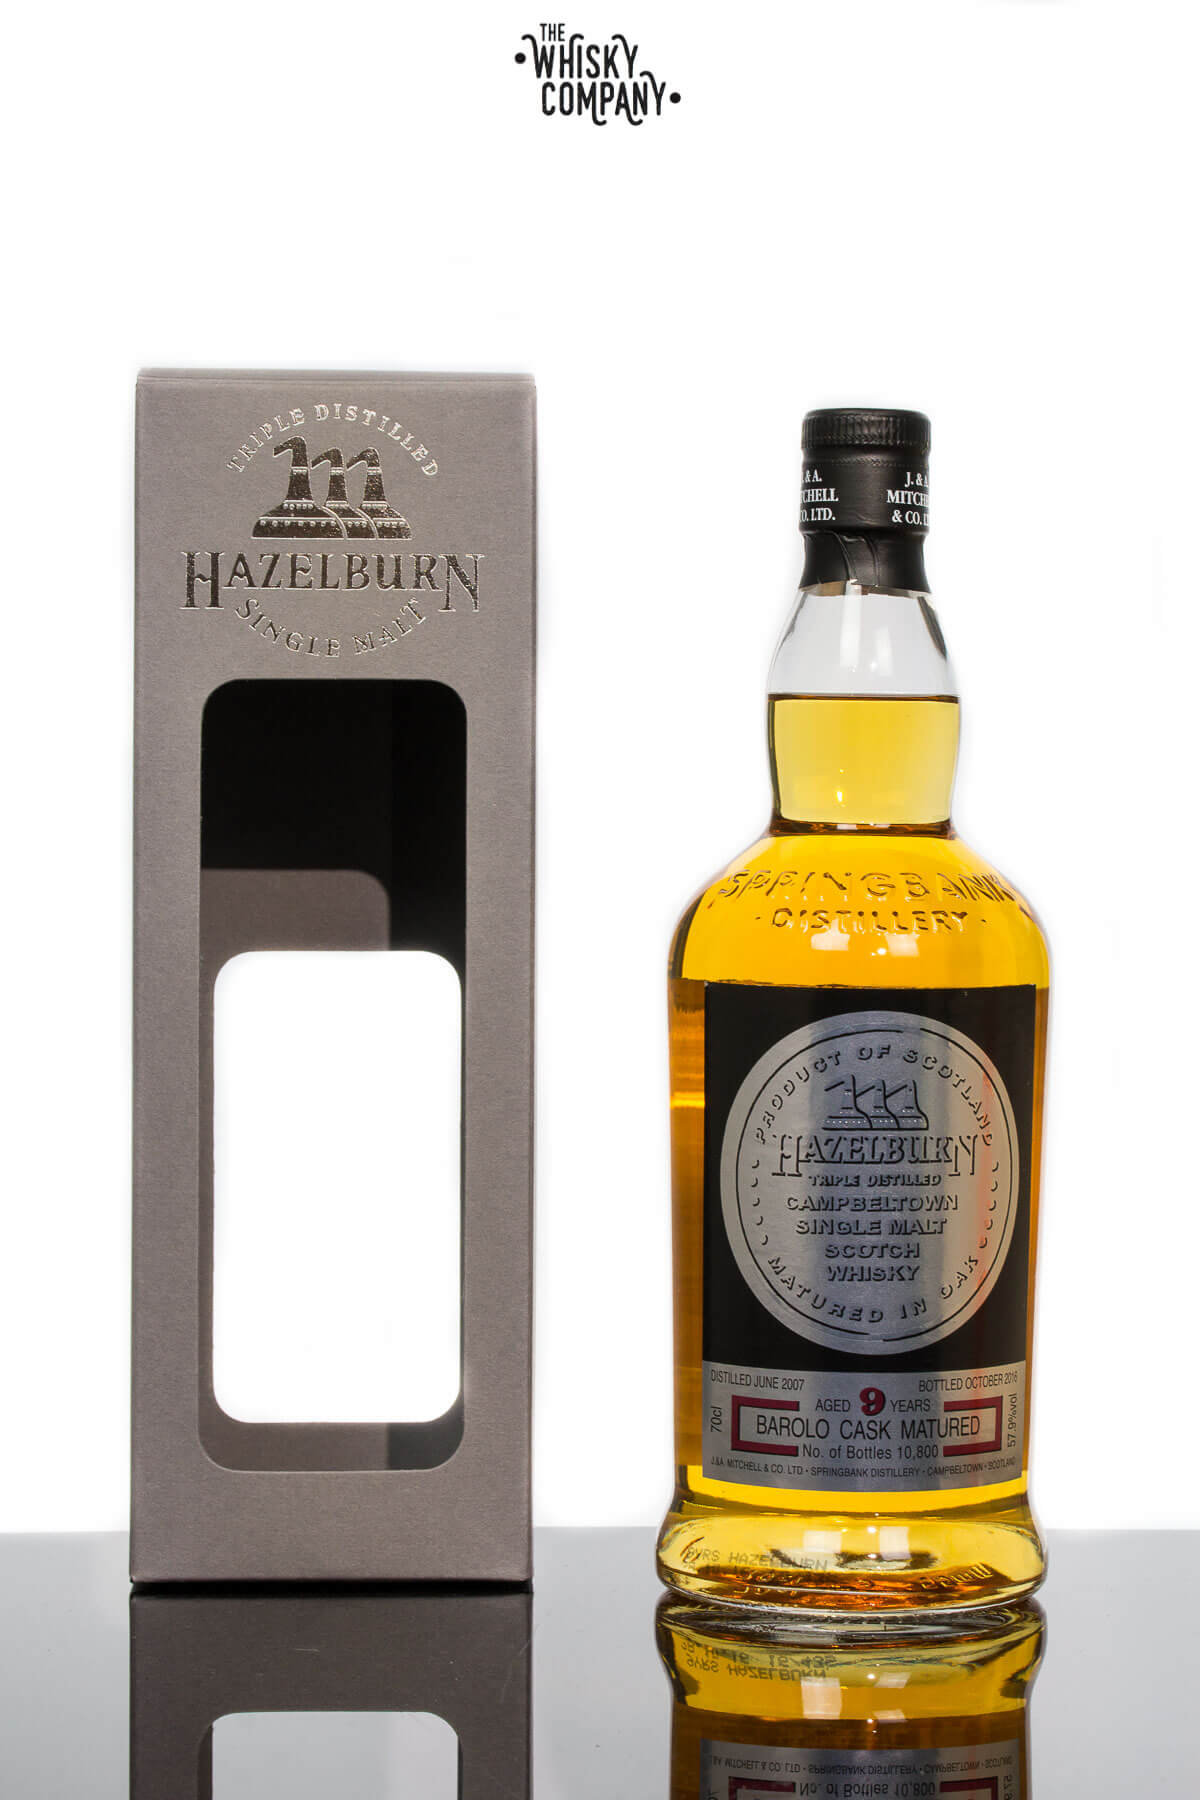 Hazelburn 2007 Aged 9 Years Barolo Cask Finish Single Malt Scotch Whisky